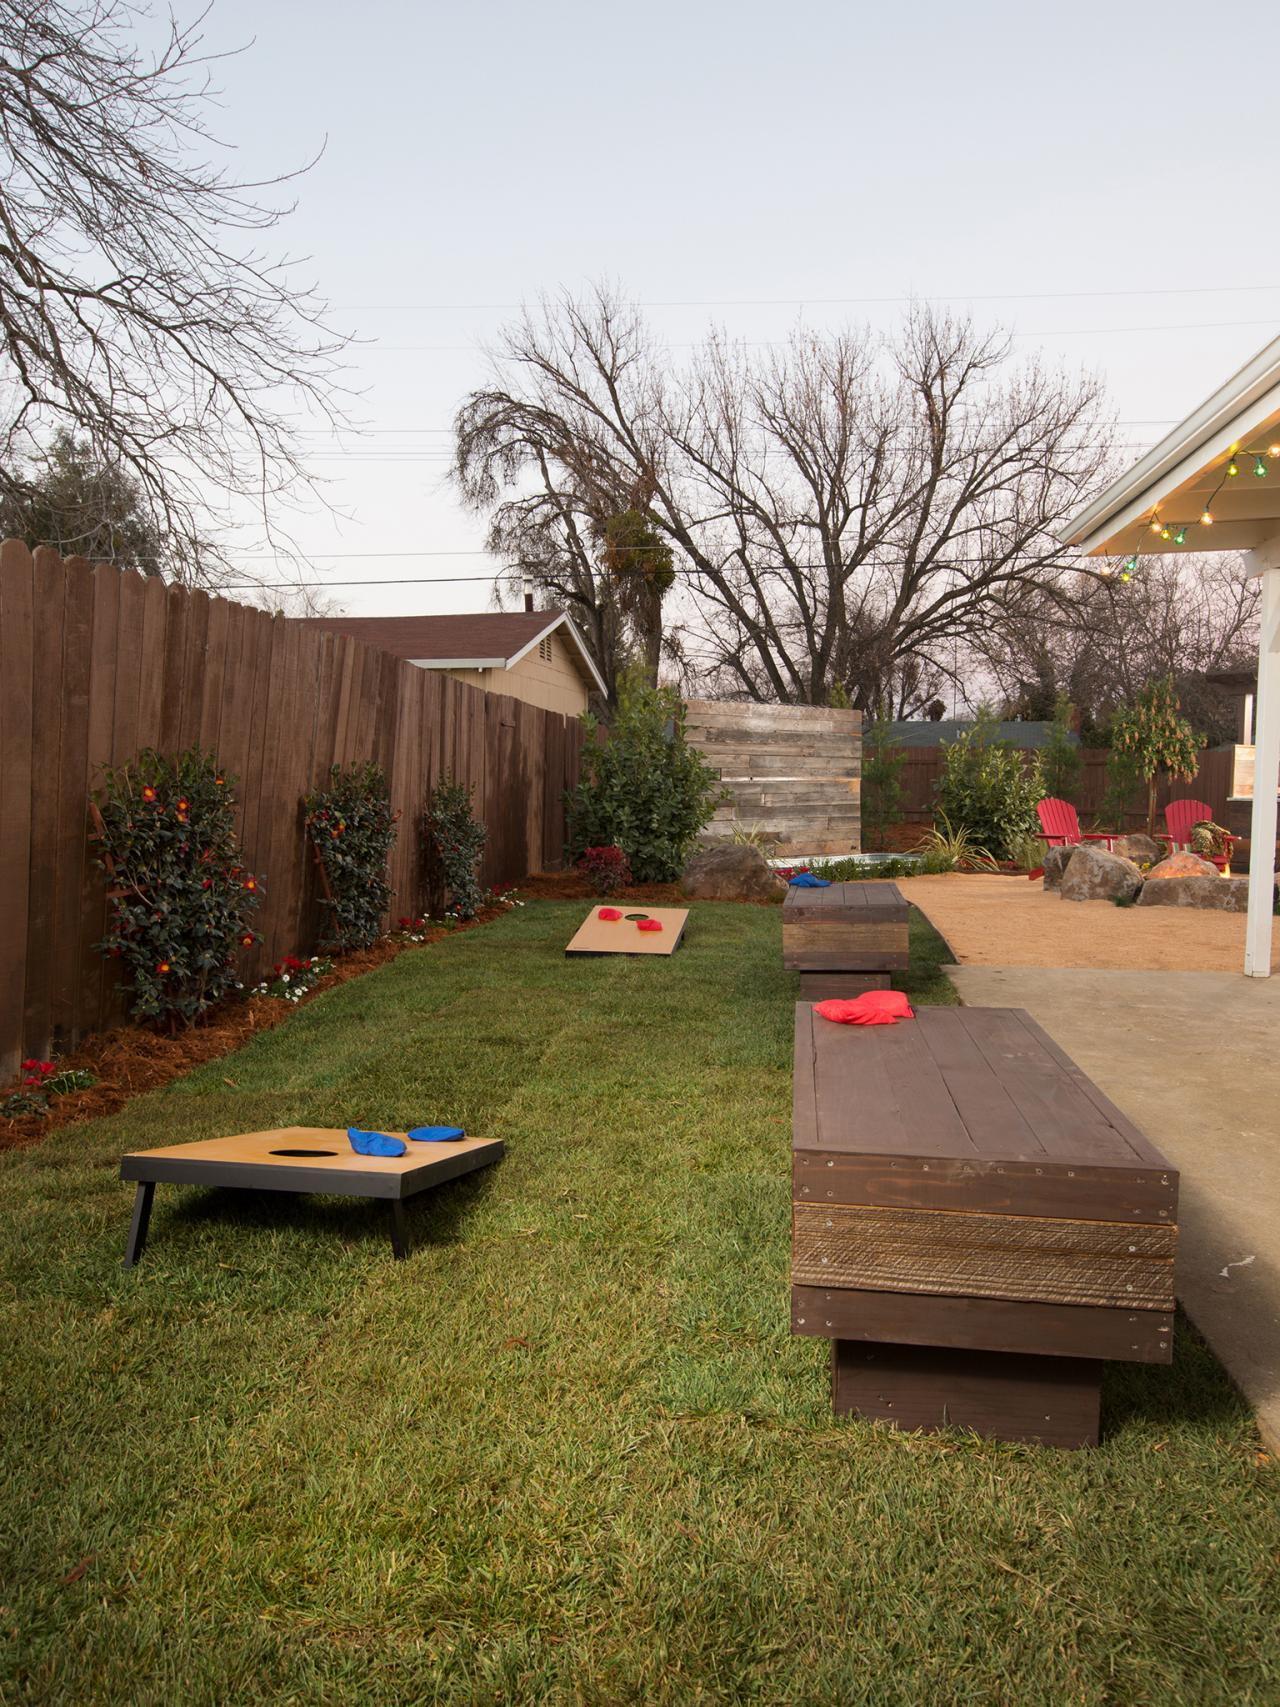 Photos | Yard Crashers | DIY